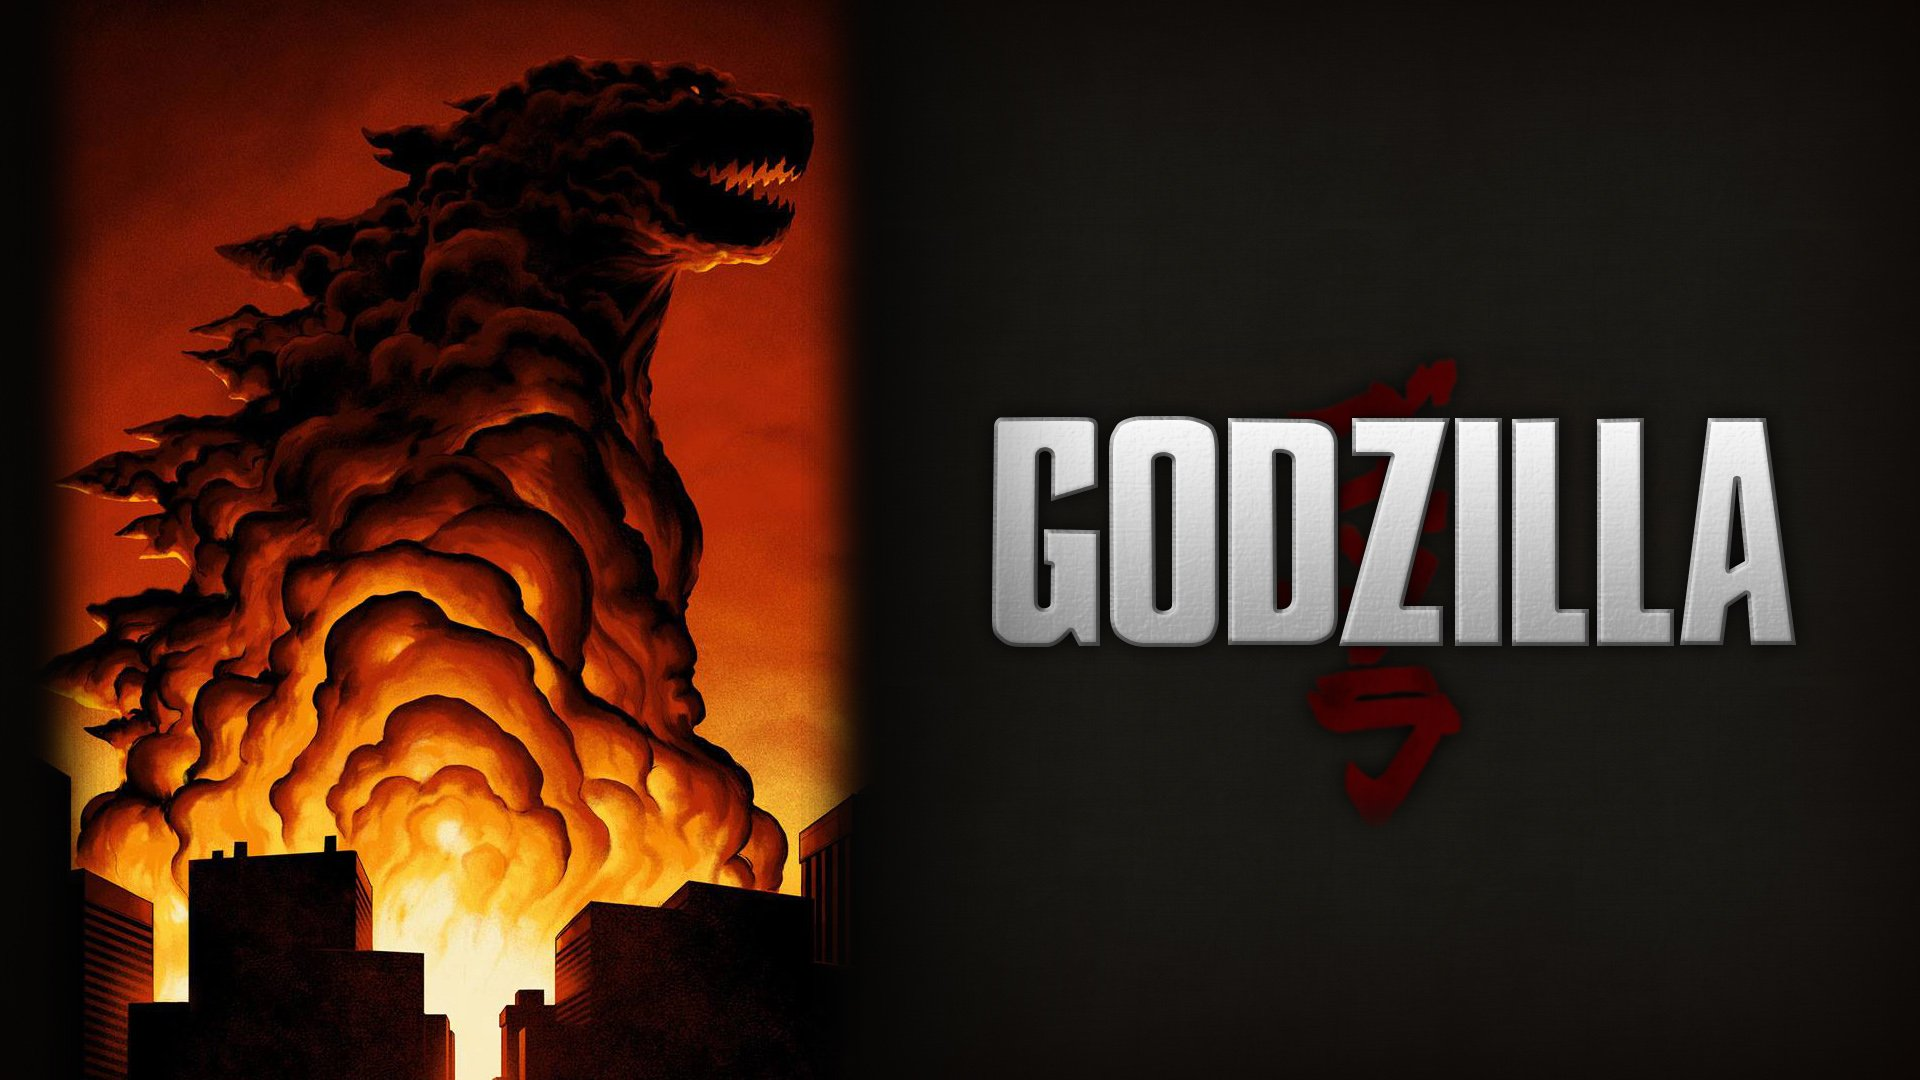 Godzilla Wallpapers HD 1920x1080